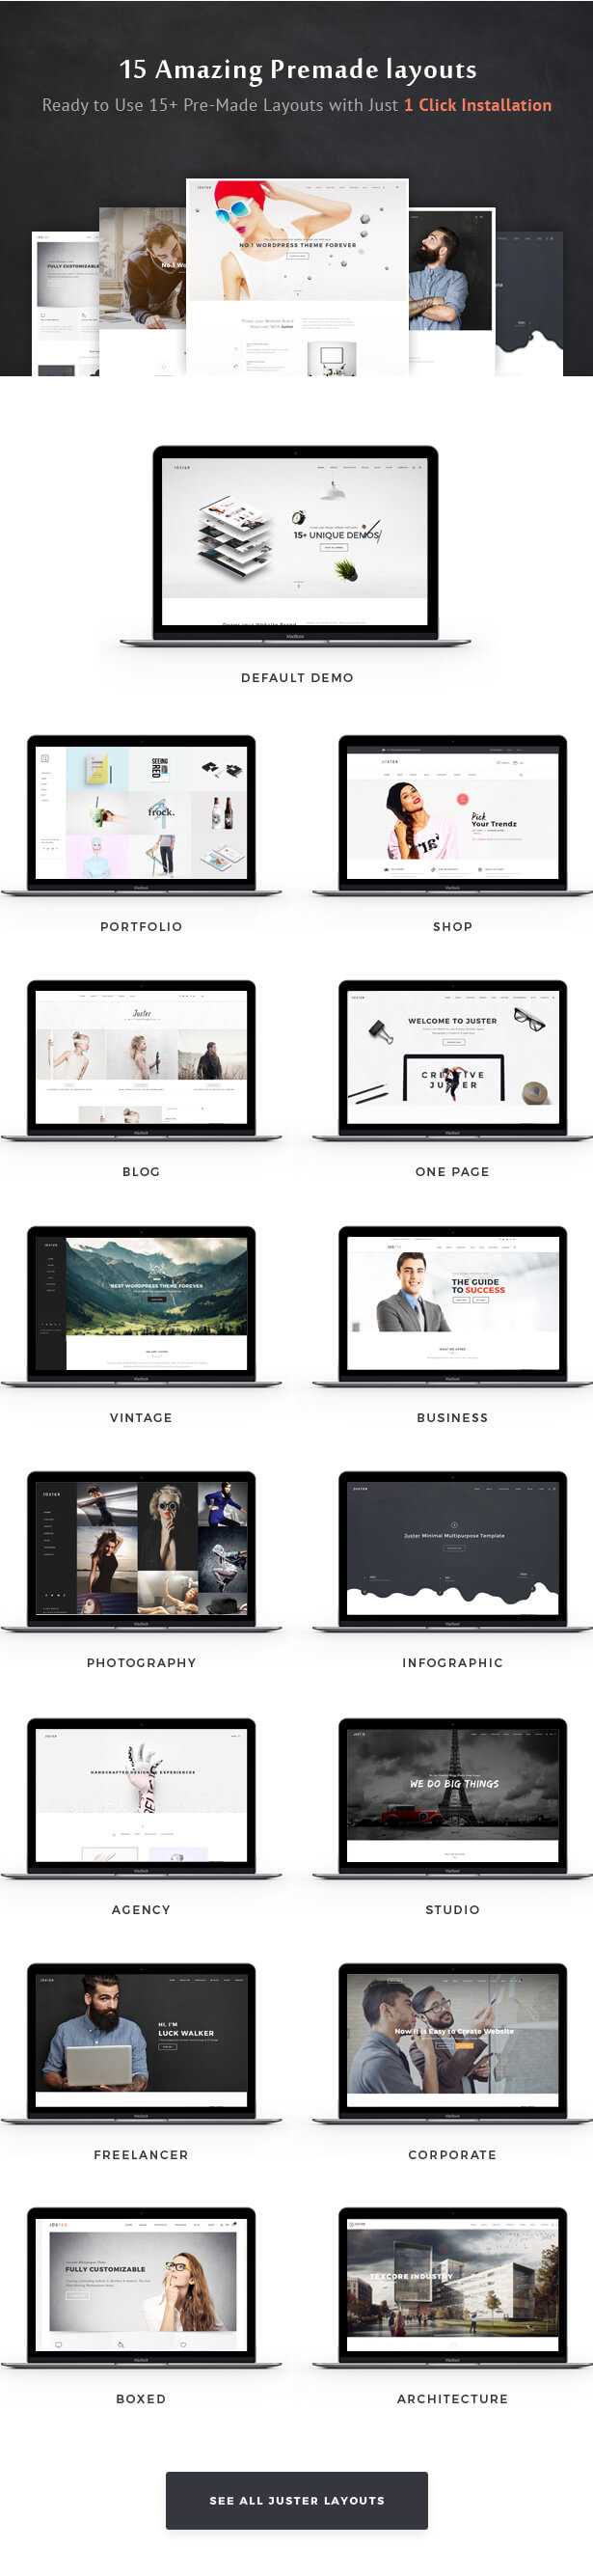 Juster Multi-Purpose WordPress Theme